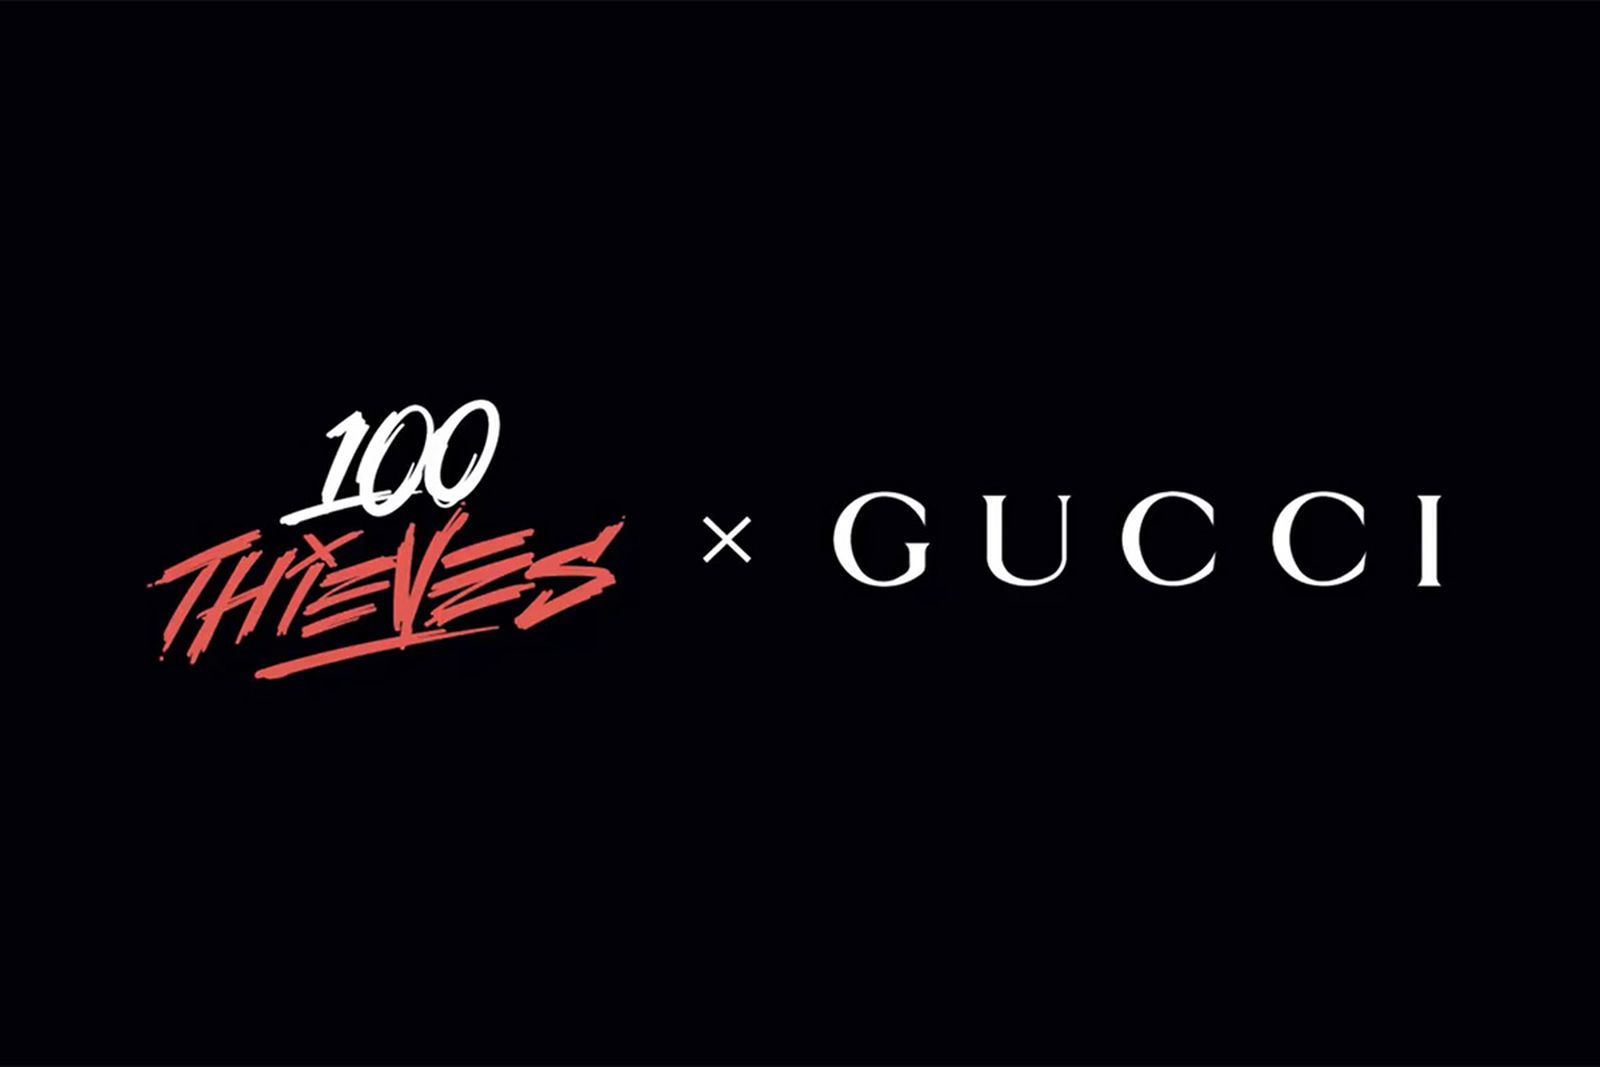 gucci-100-thieves-collaboration-collection-release-02